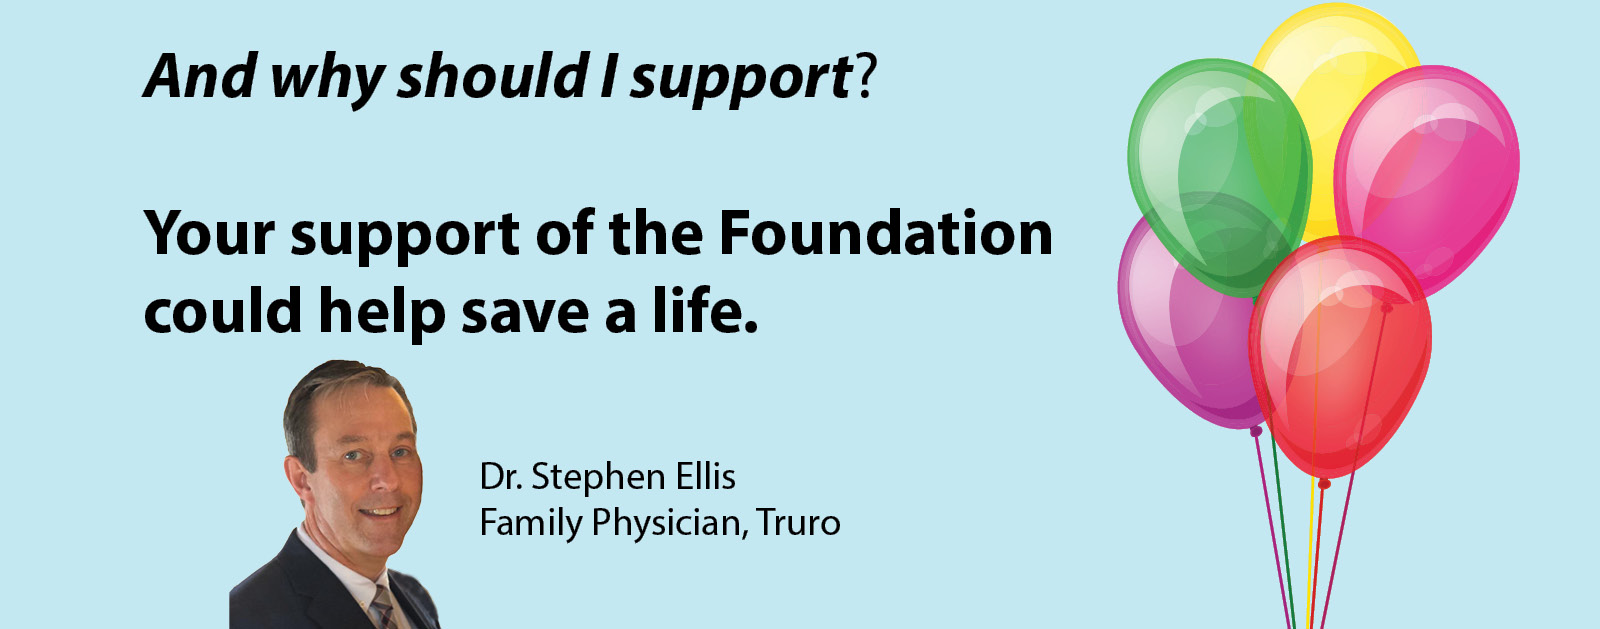 Your support of the Foundation could help save a life